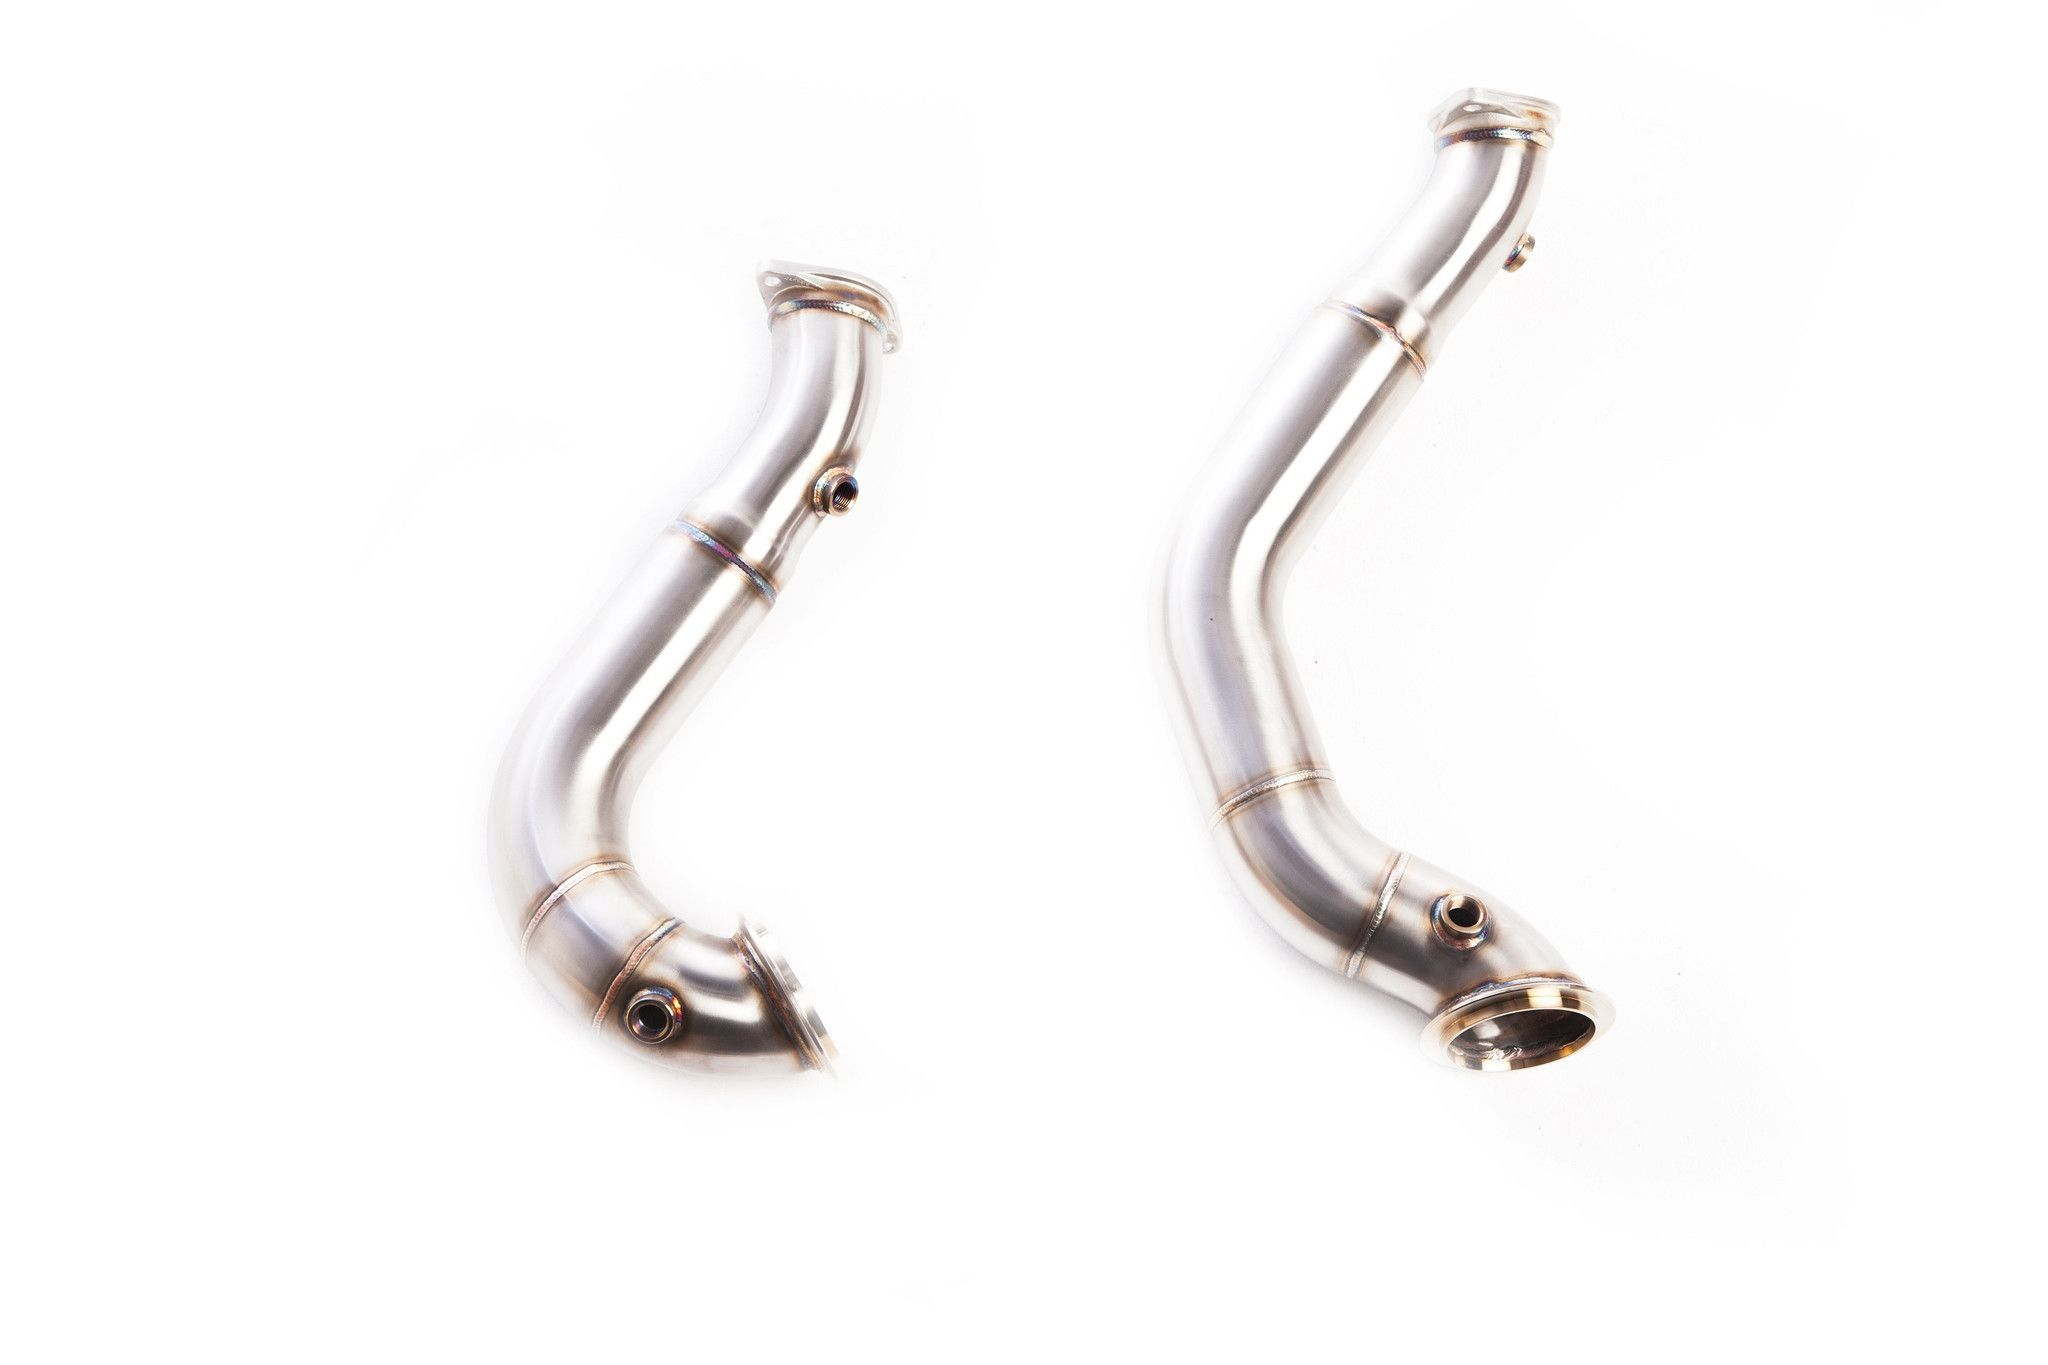 Gt Downpipe Cat Deleted For Bmw N54 E90 E92 E93